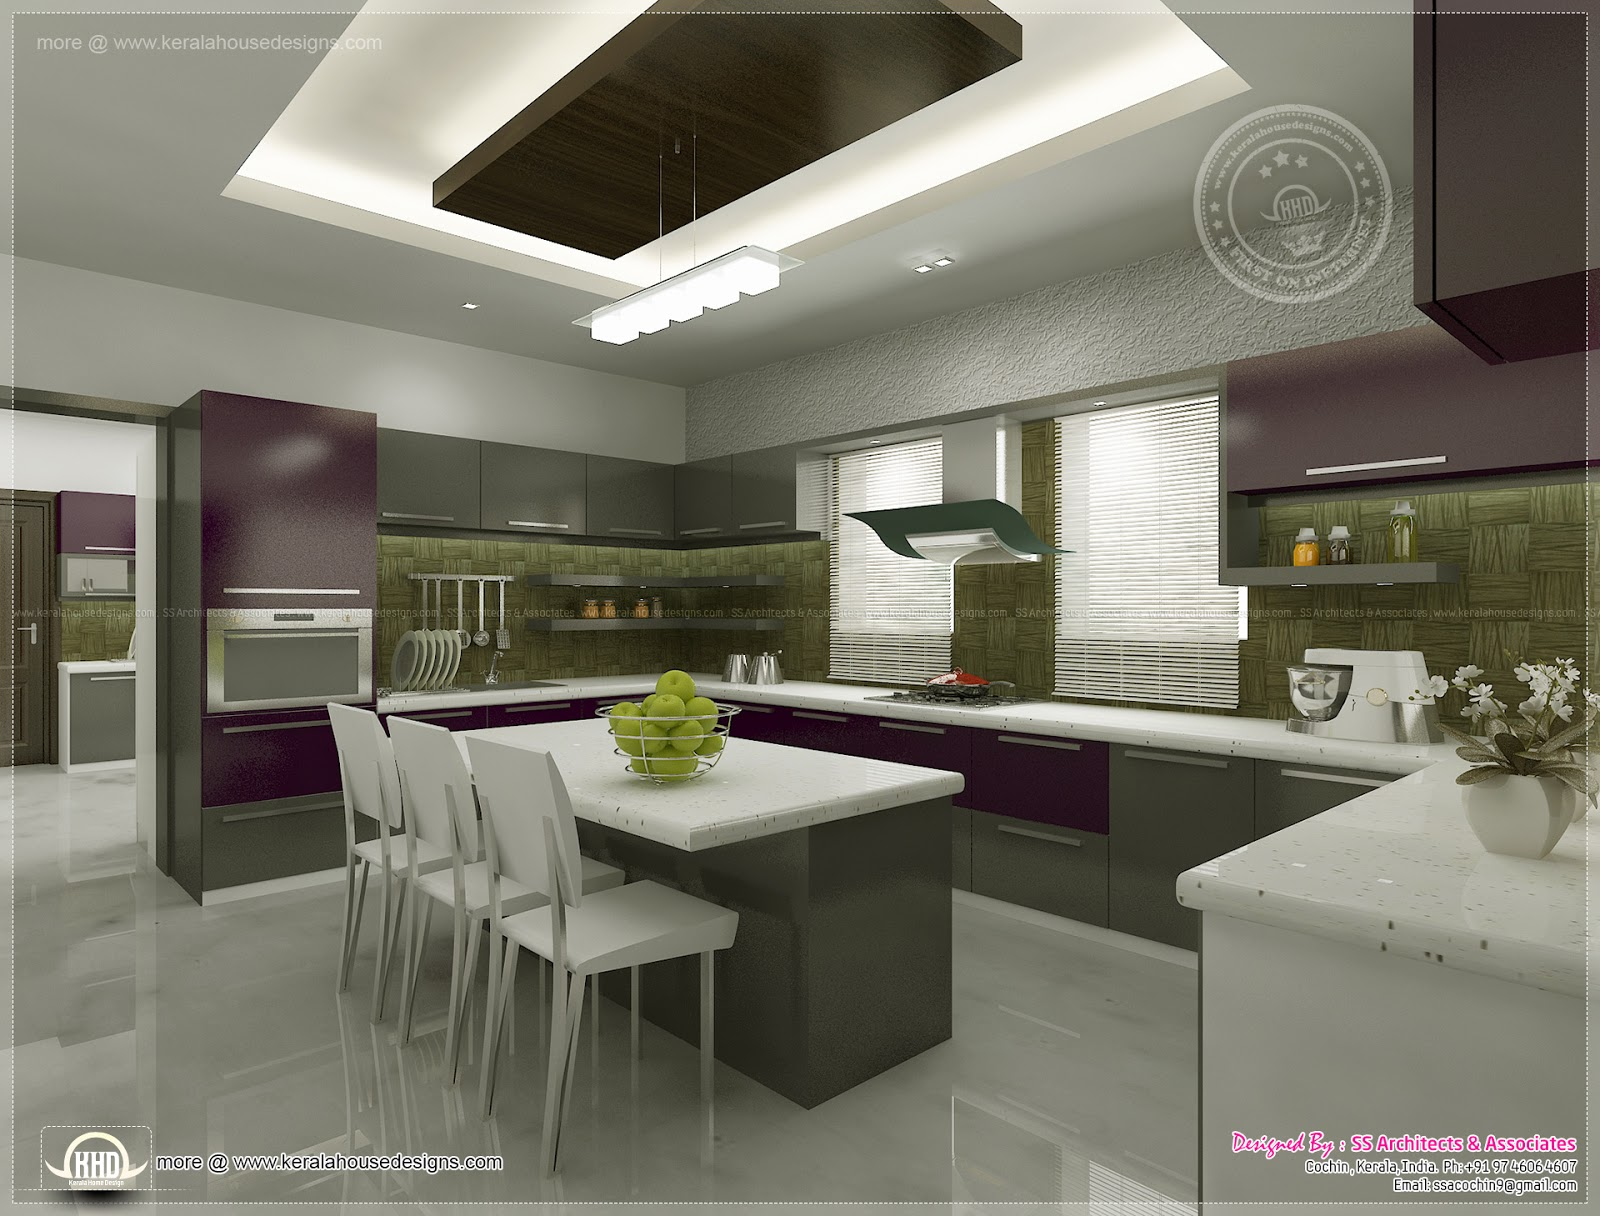 Kitchen interior views by ss architects cochin kerala for Architecture design house interior